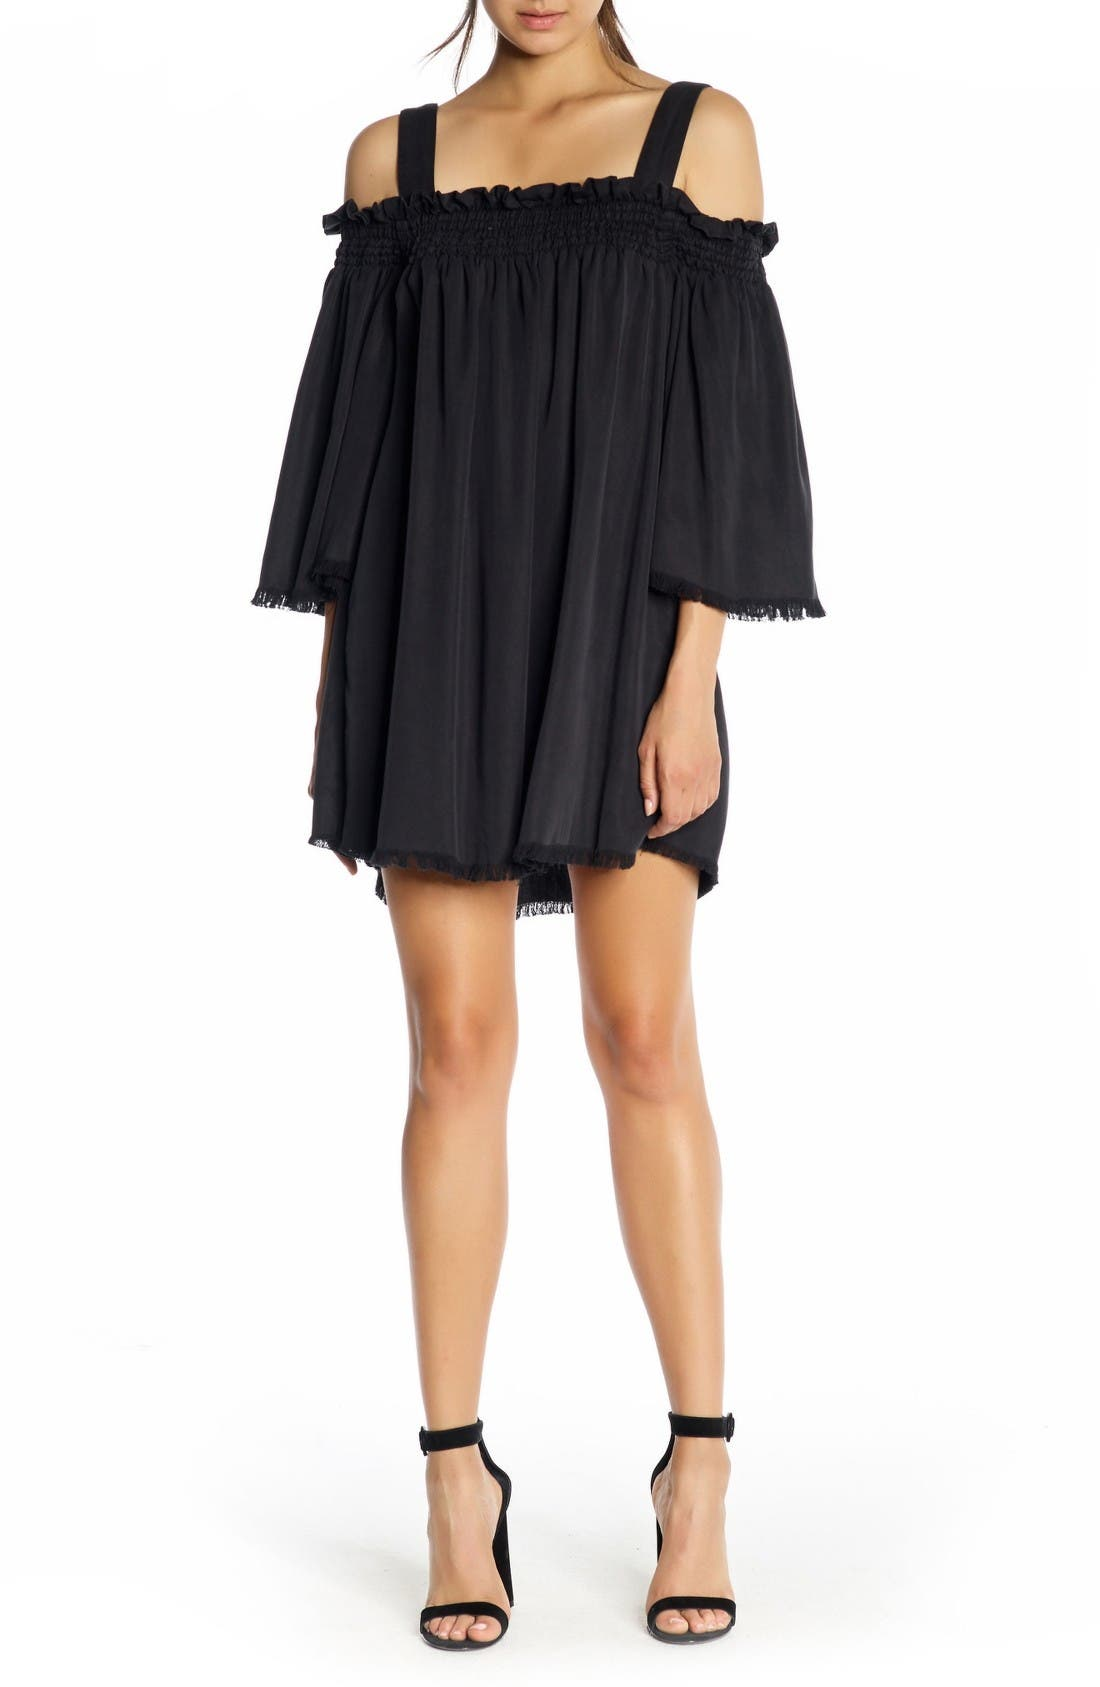 Alternate Image 1 Selected - KENDALL + KYLIE Fray Twill Swing Dress